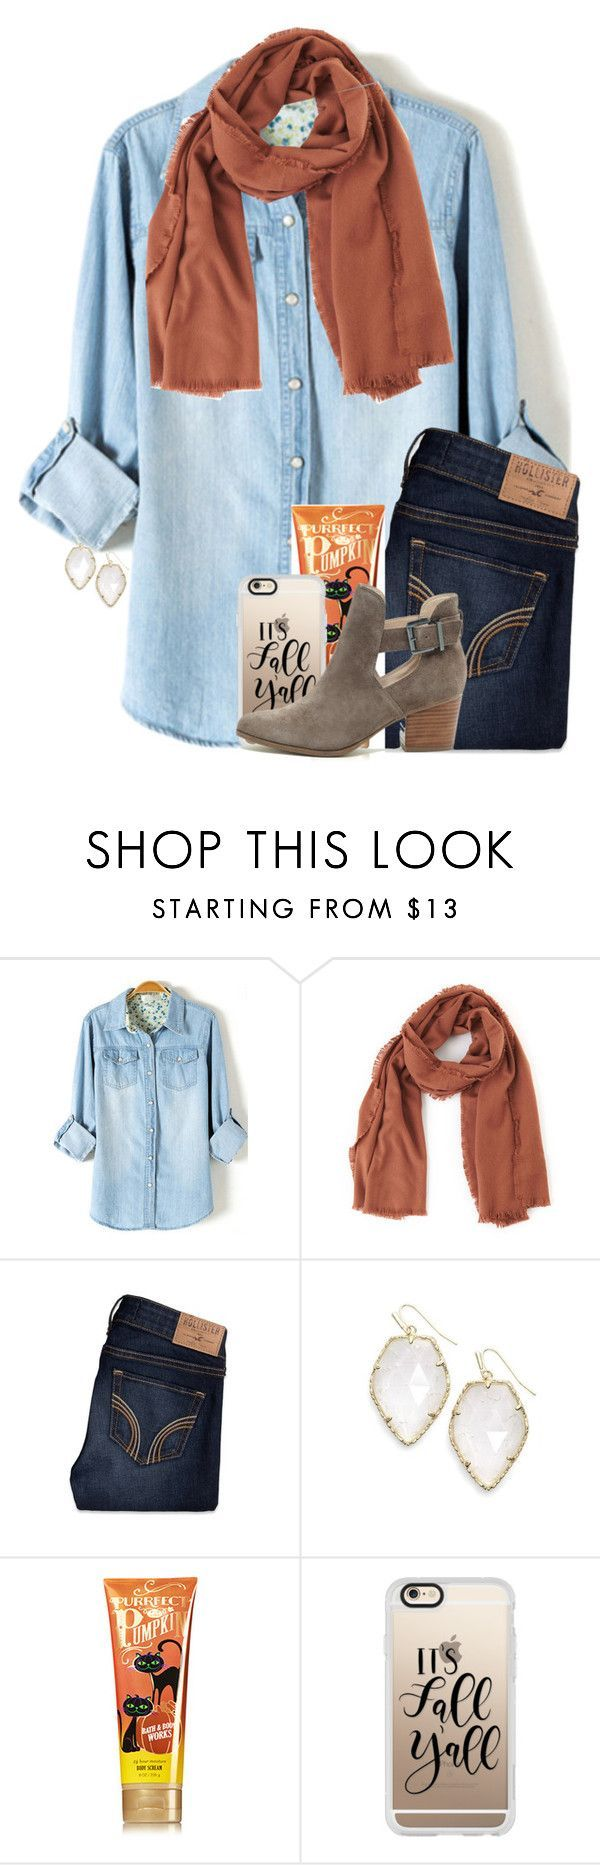 """want this outfit so much"" by tessbartoszek ❤️ liked on Polyvore featuring TIBI, Hollister Co., Kendra Scott, Casetify and Sole Society"